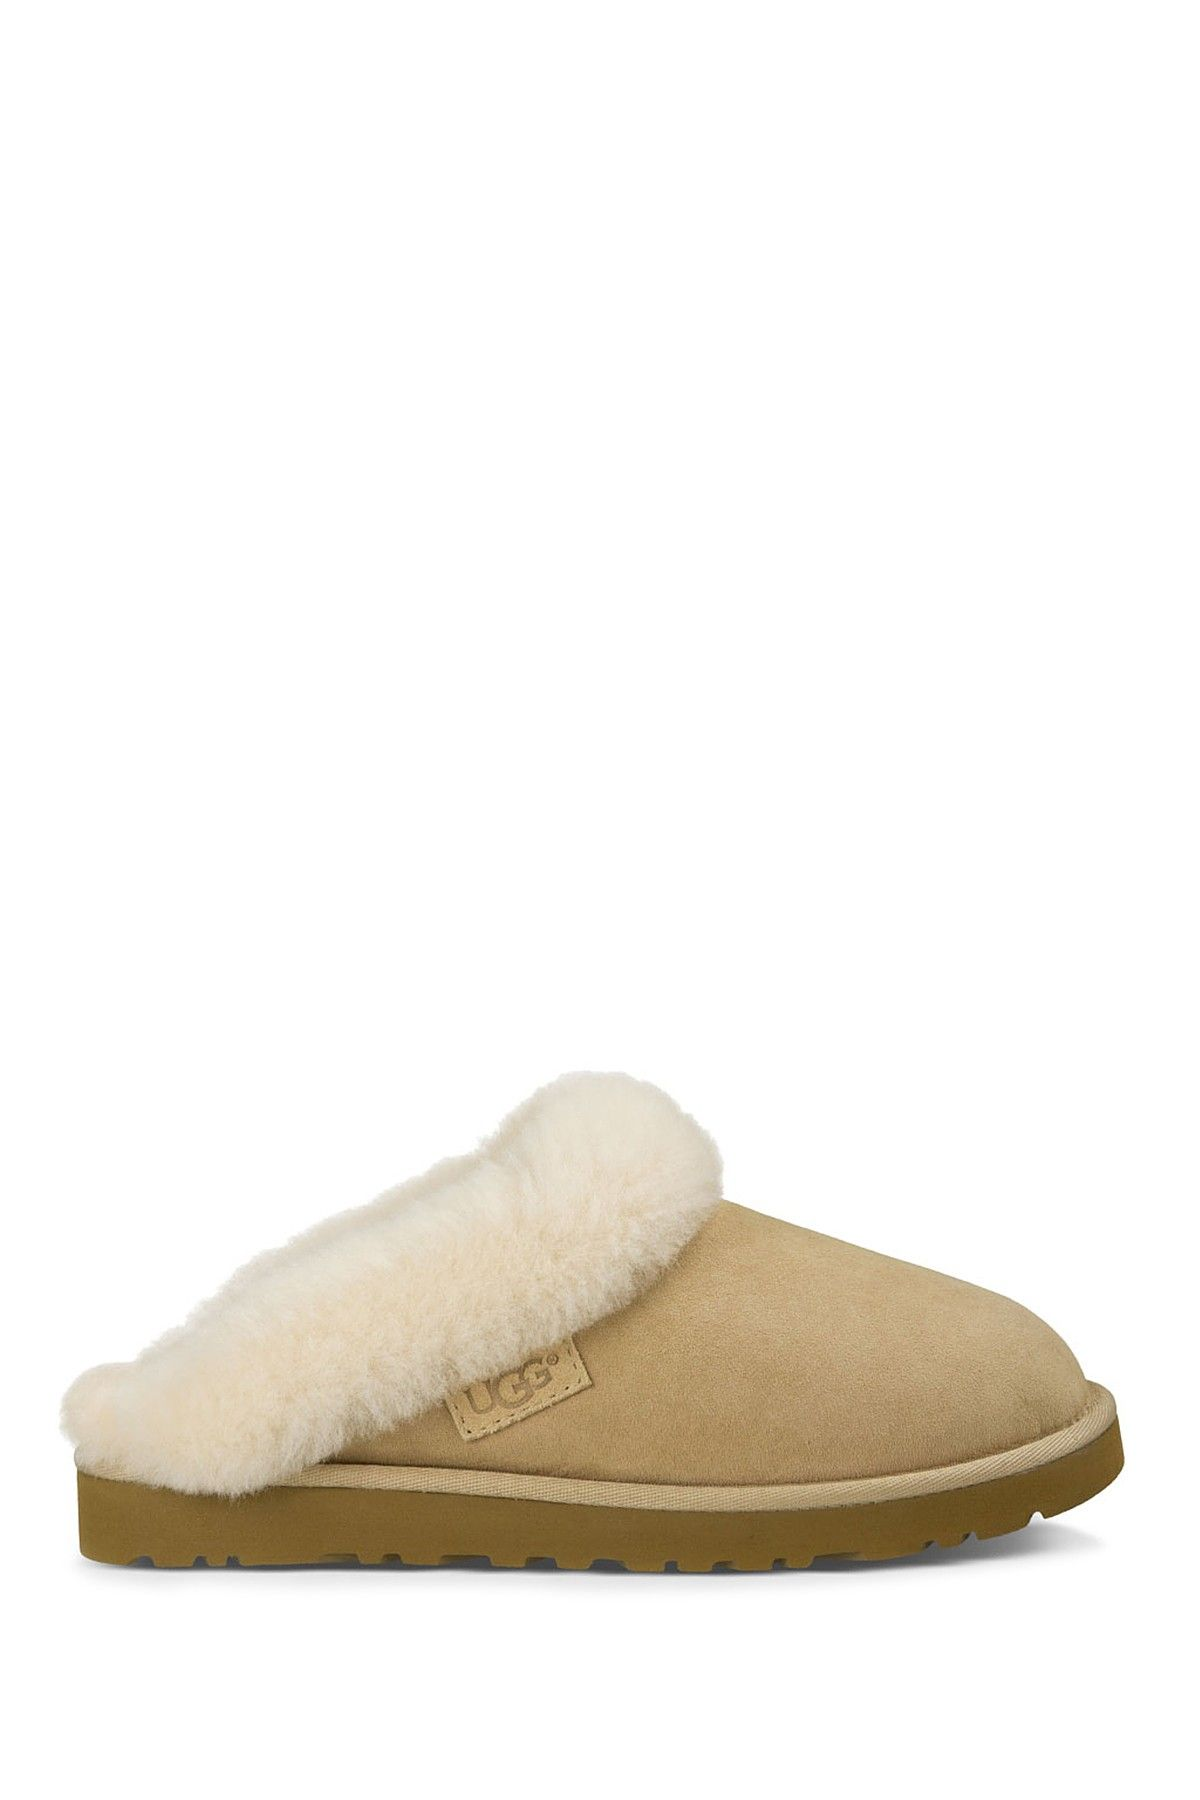 adad1d9ea7 Cluggette Genuine Shearling Lined Indoor Outdoor Slipper